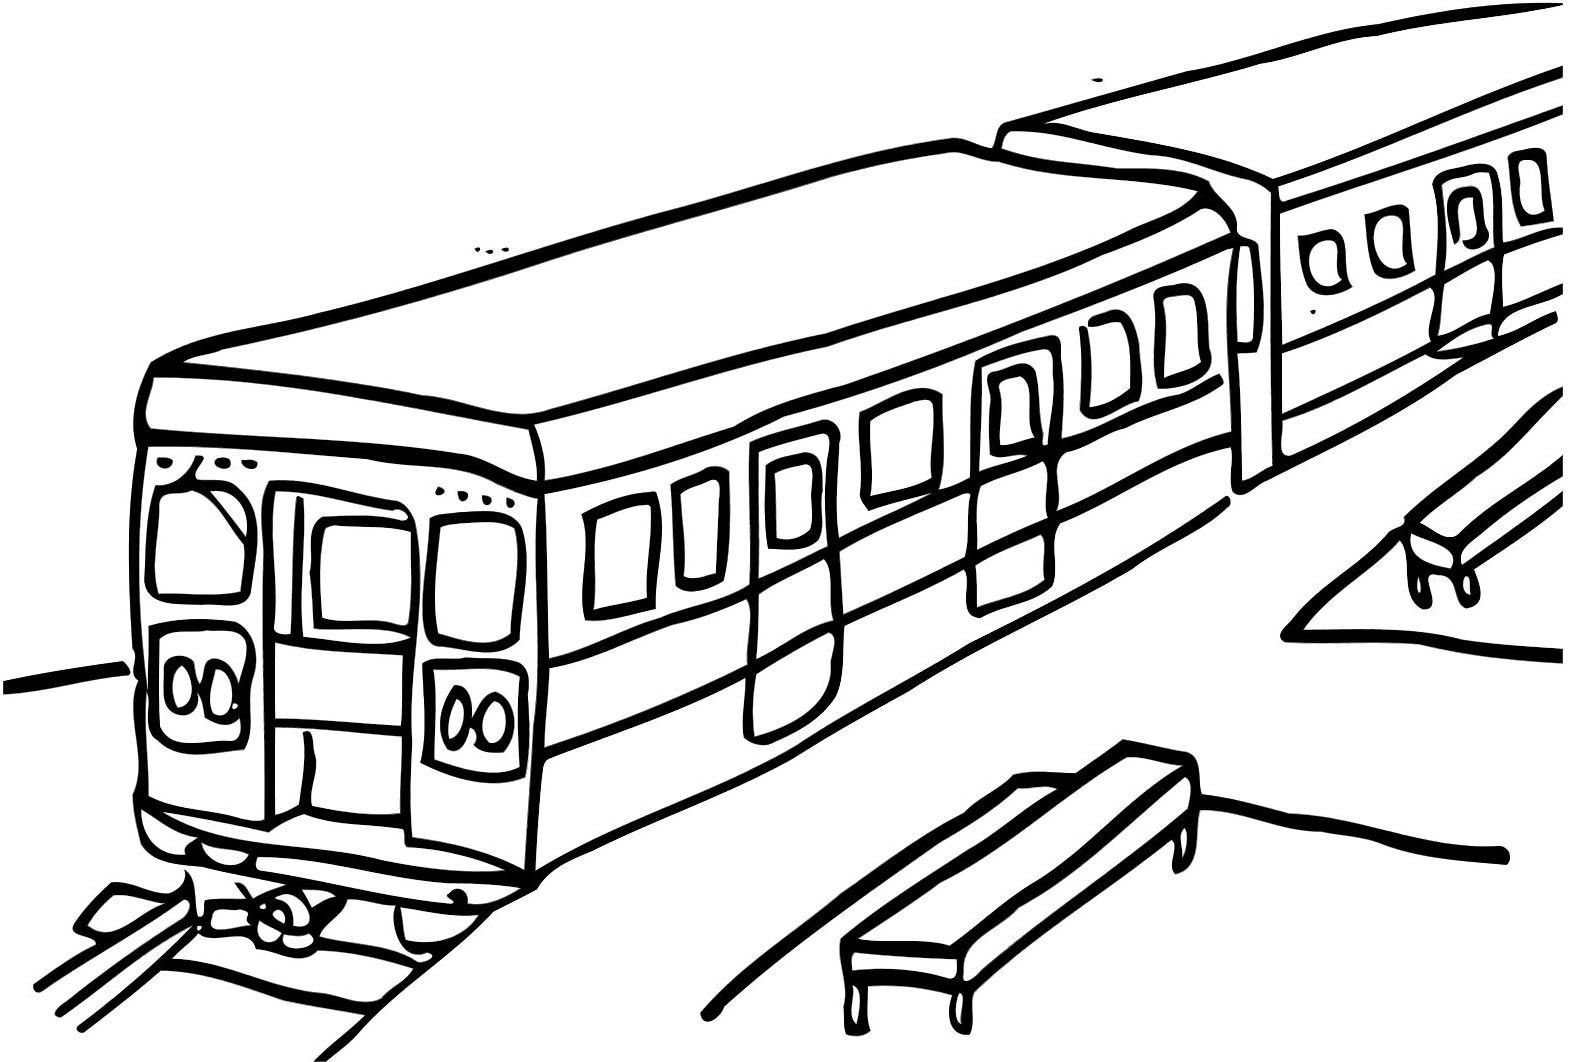 Subway Train Coloring Pages Train Coloring Pages Cars Coloring Pages Coloring Pages